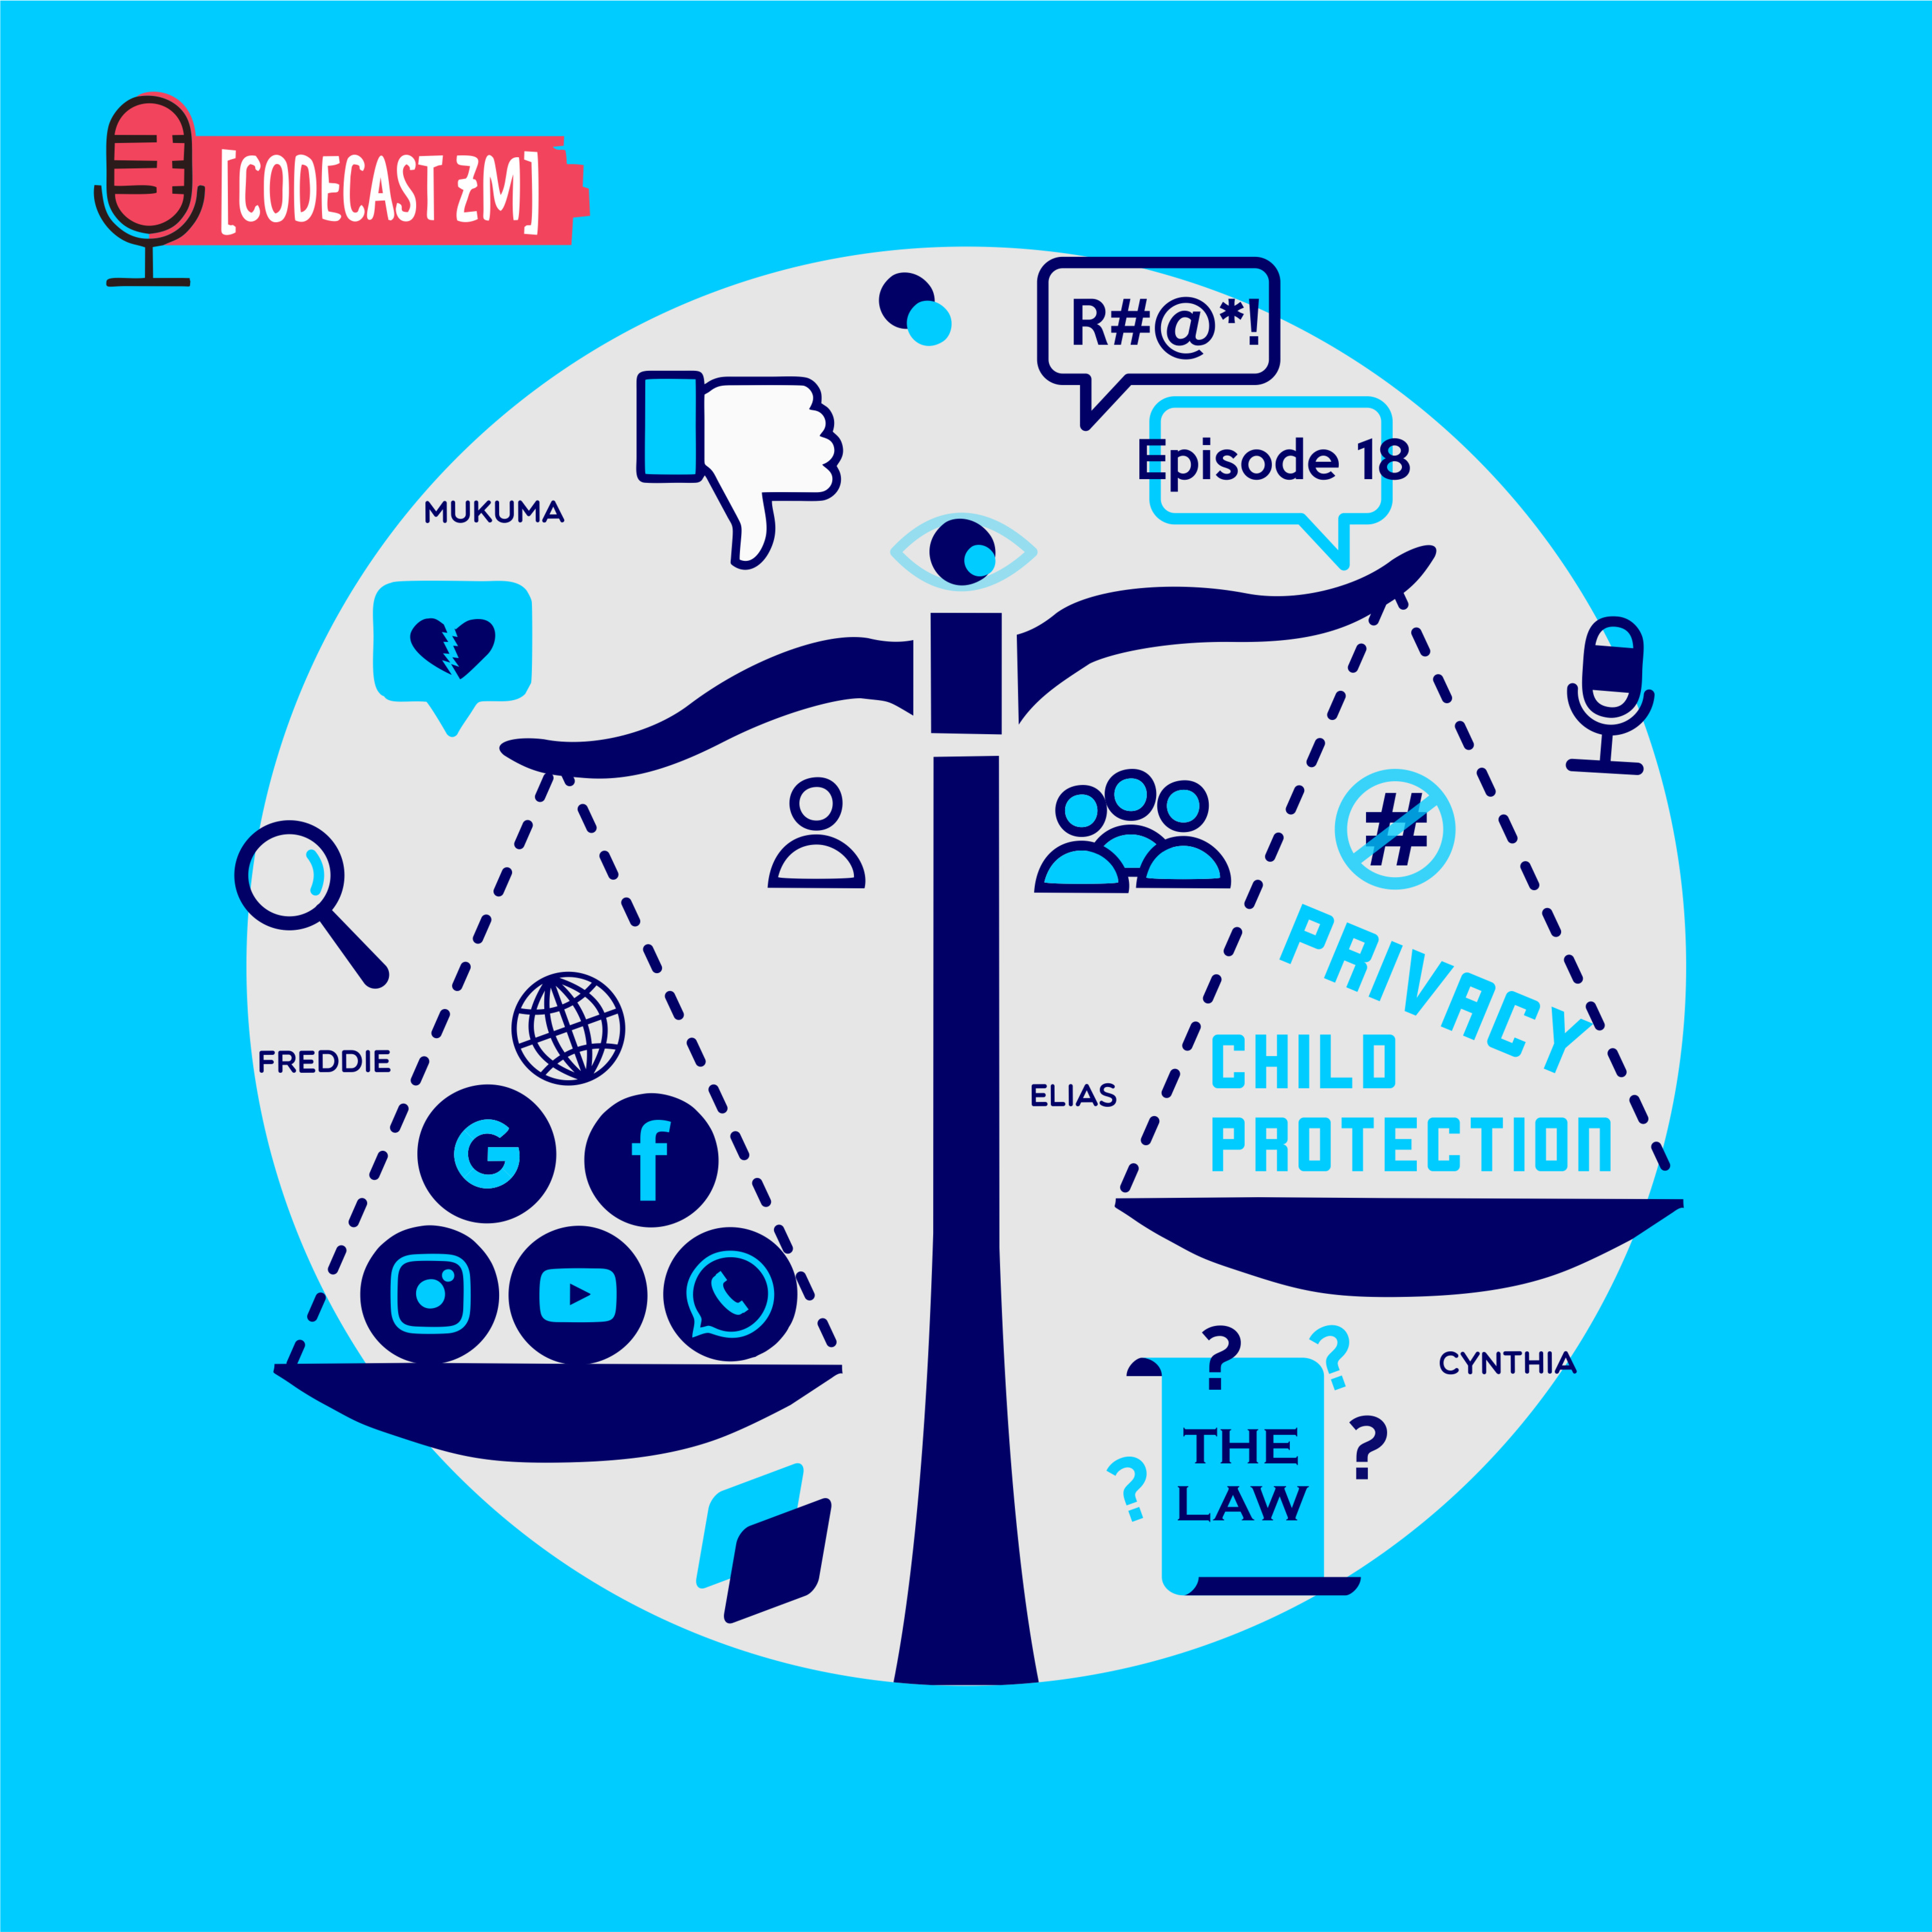 EP18 - The Repercussions of Online Actions.